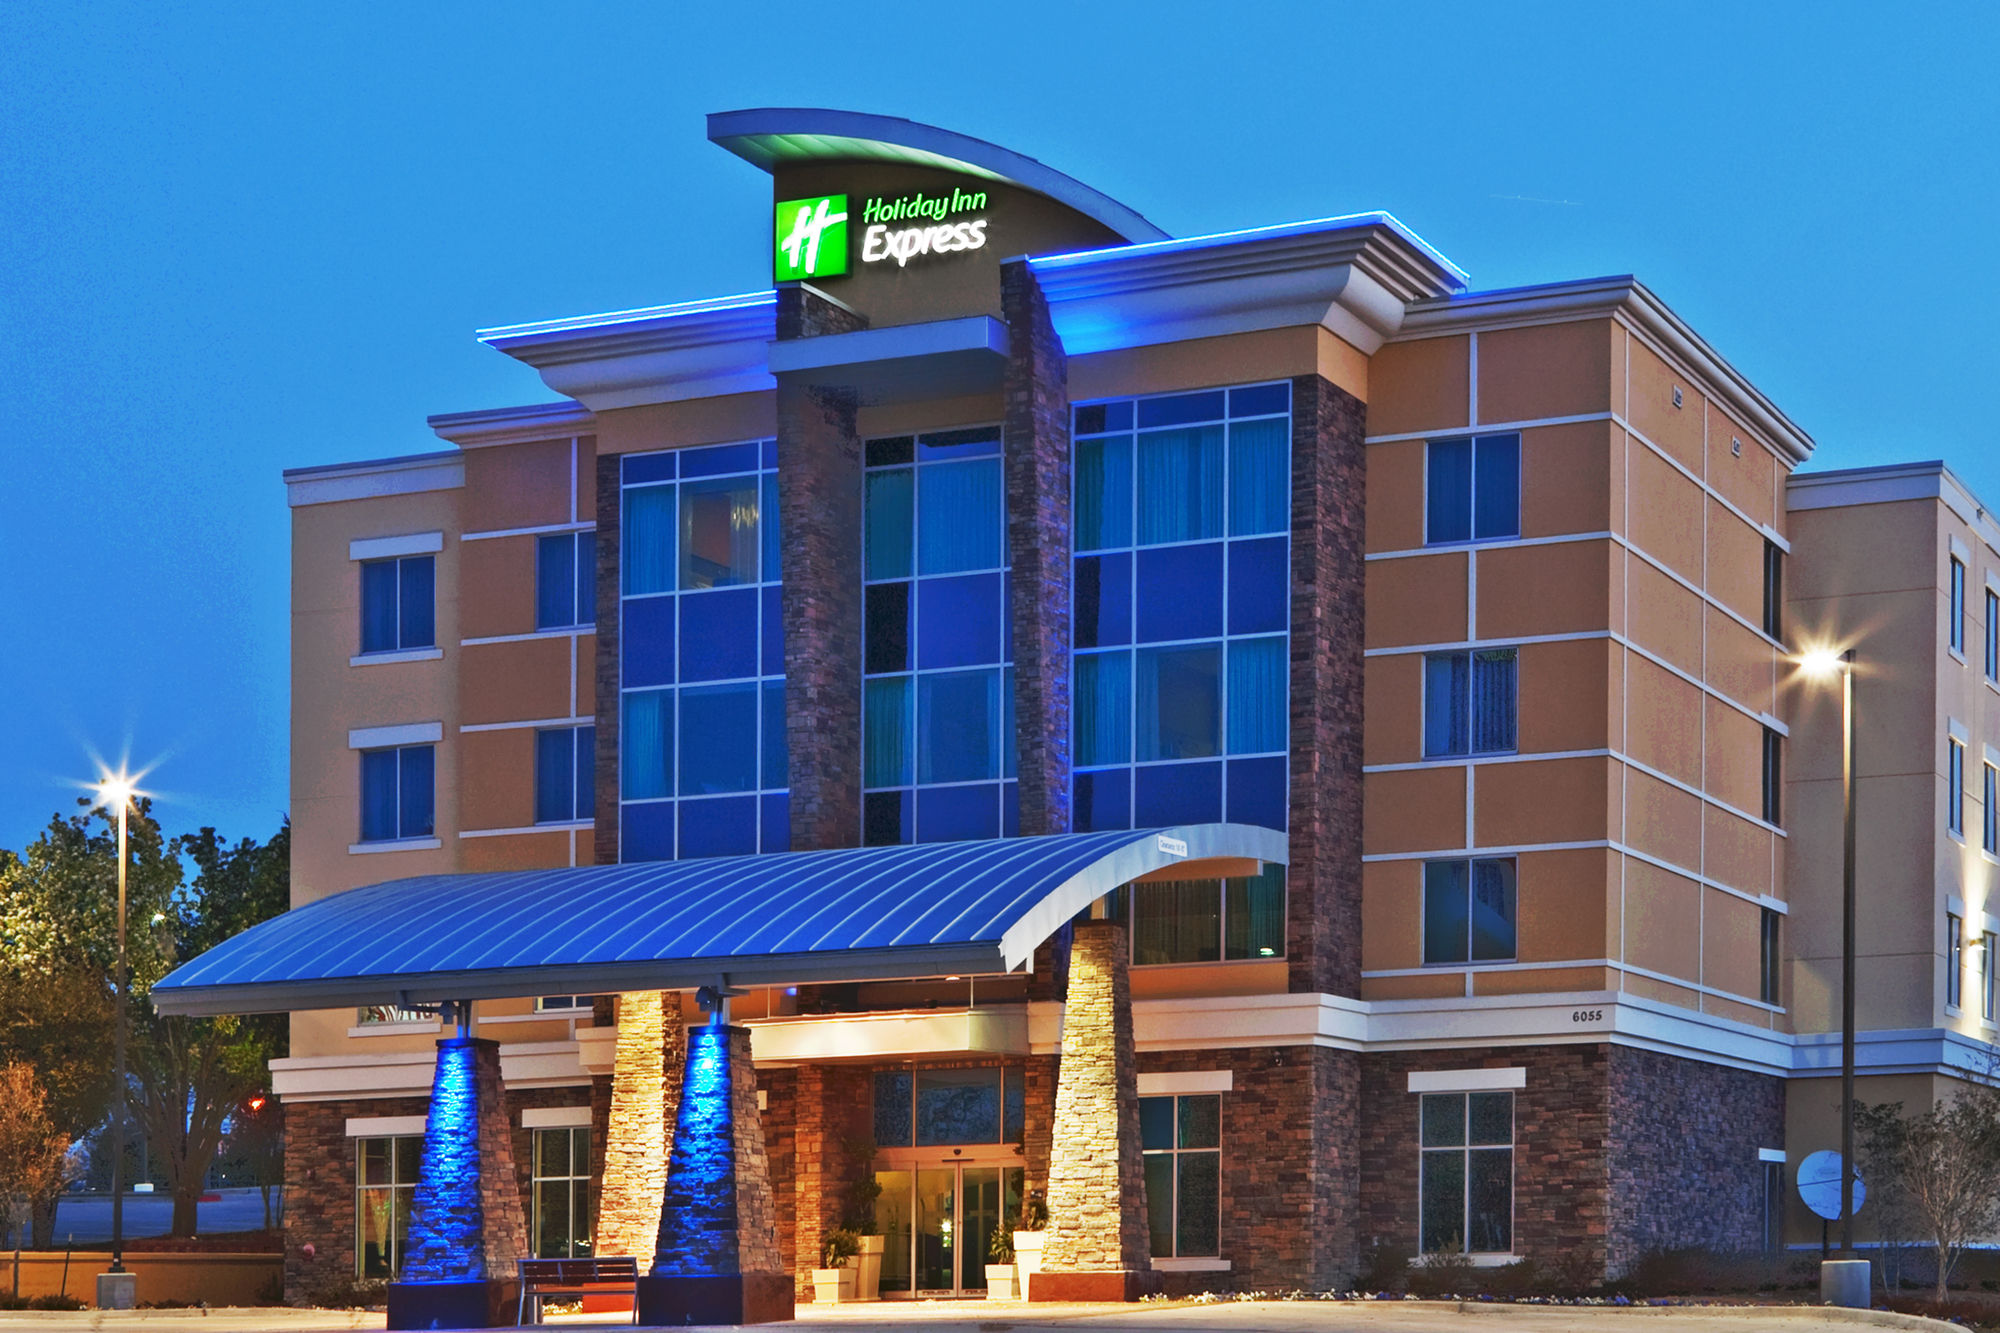 Dallas Hotel Coupons For Dallas Texas Freehotelcoupons Com